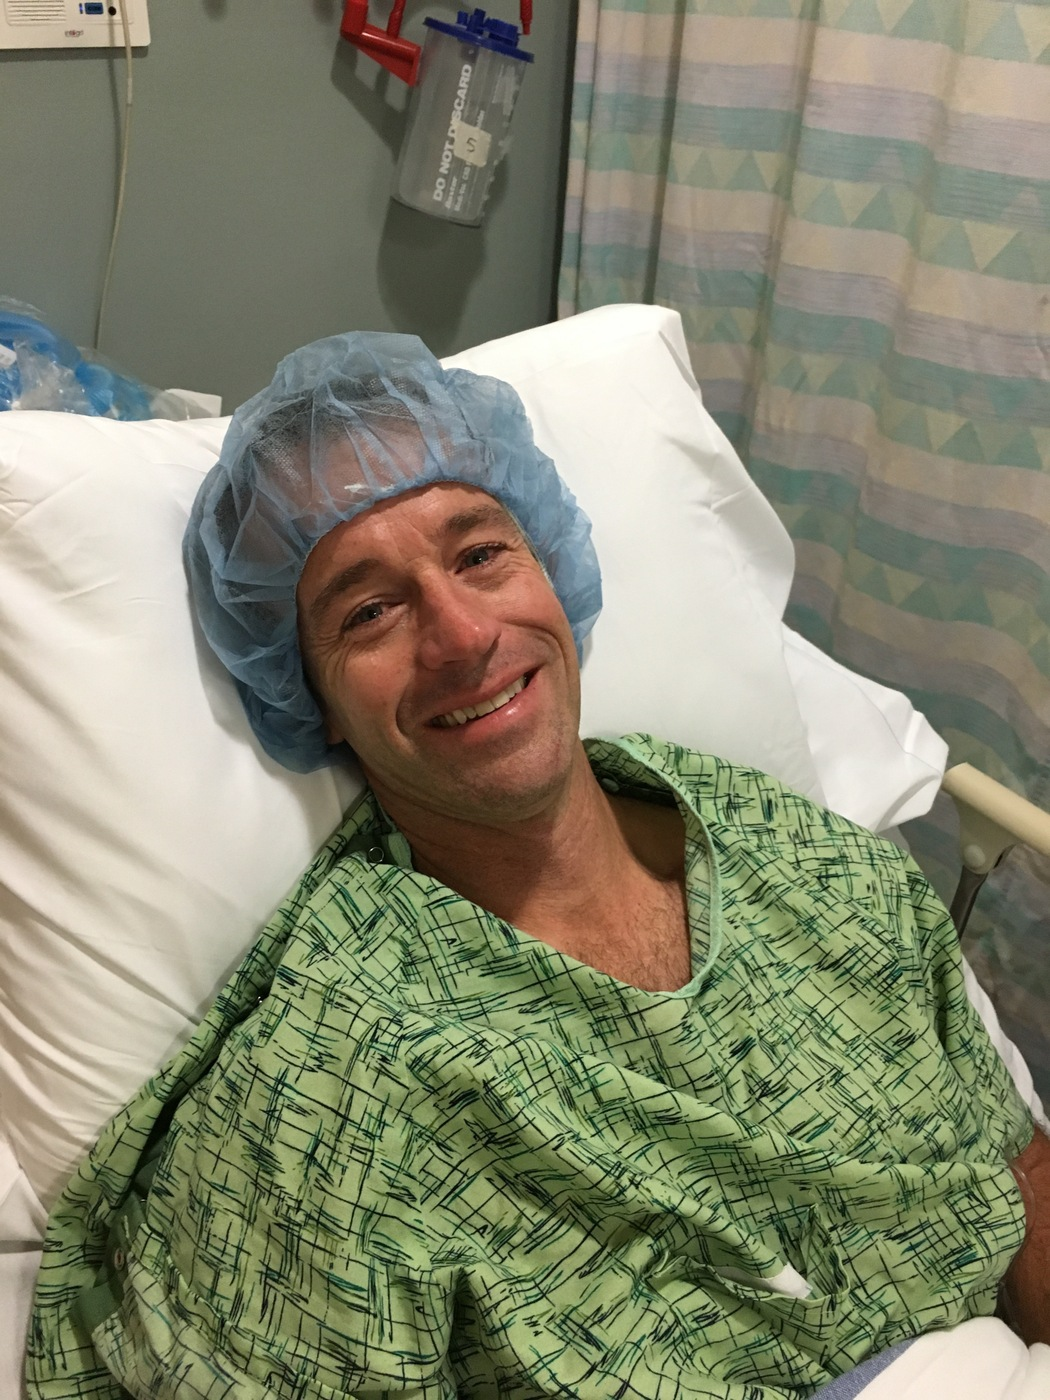 Scott McDonough before his cancer surgery in 2017